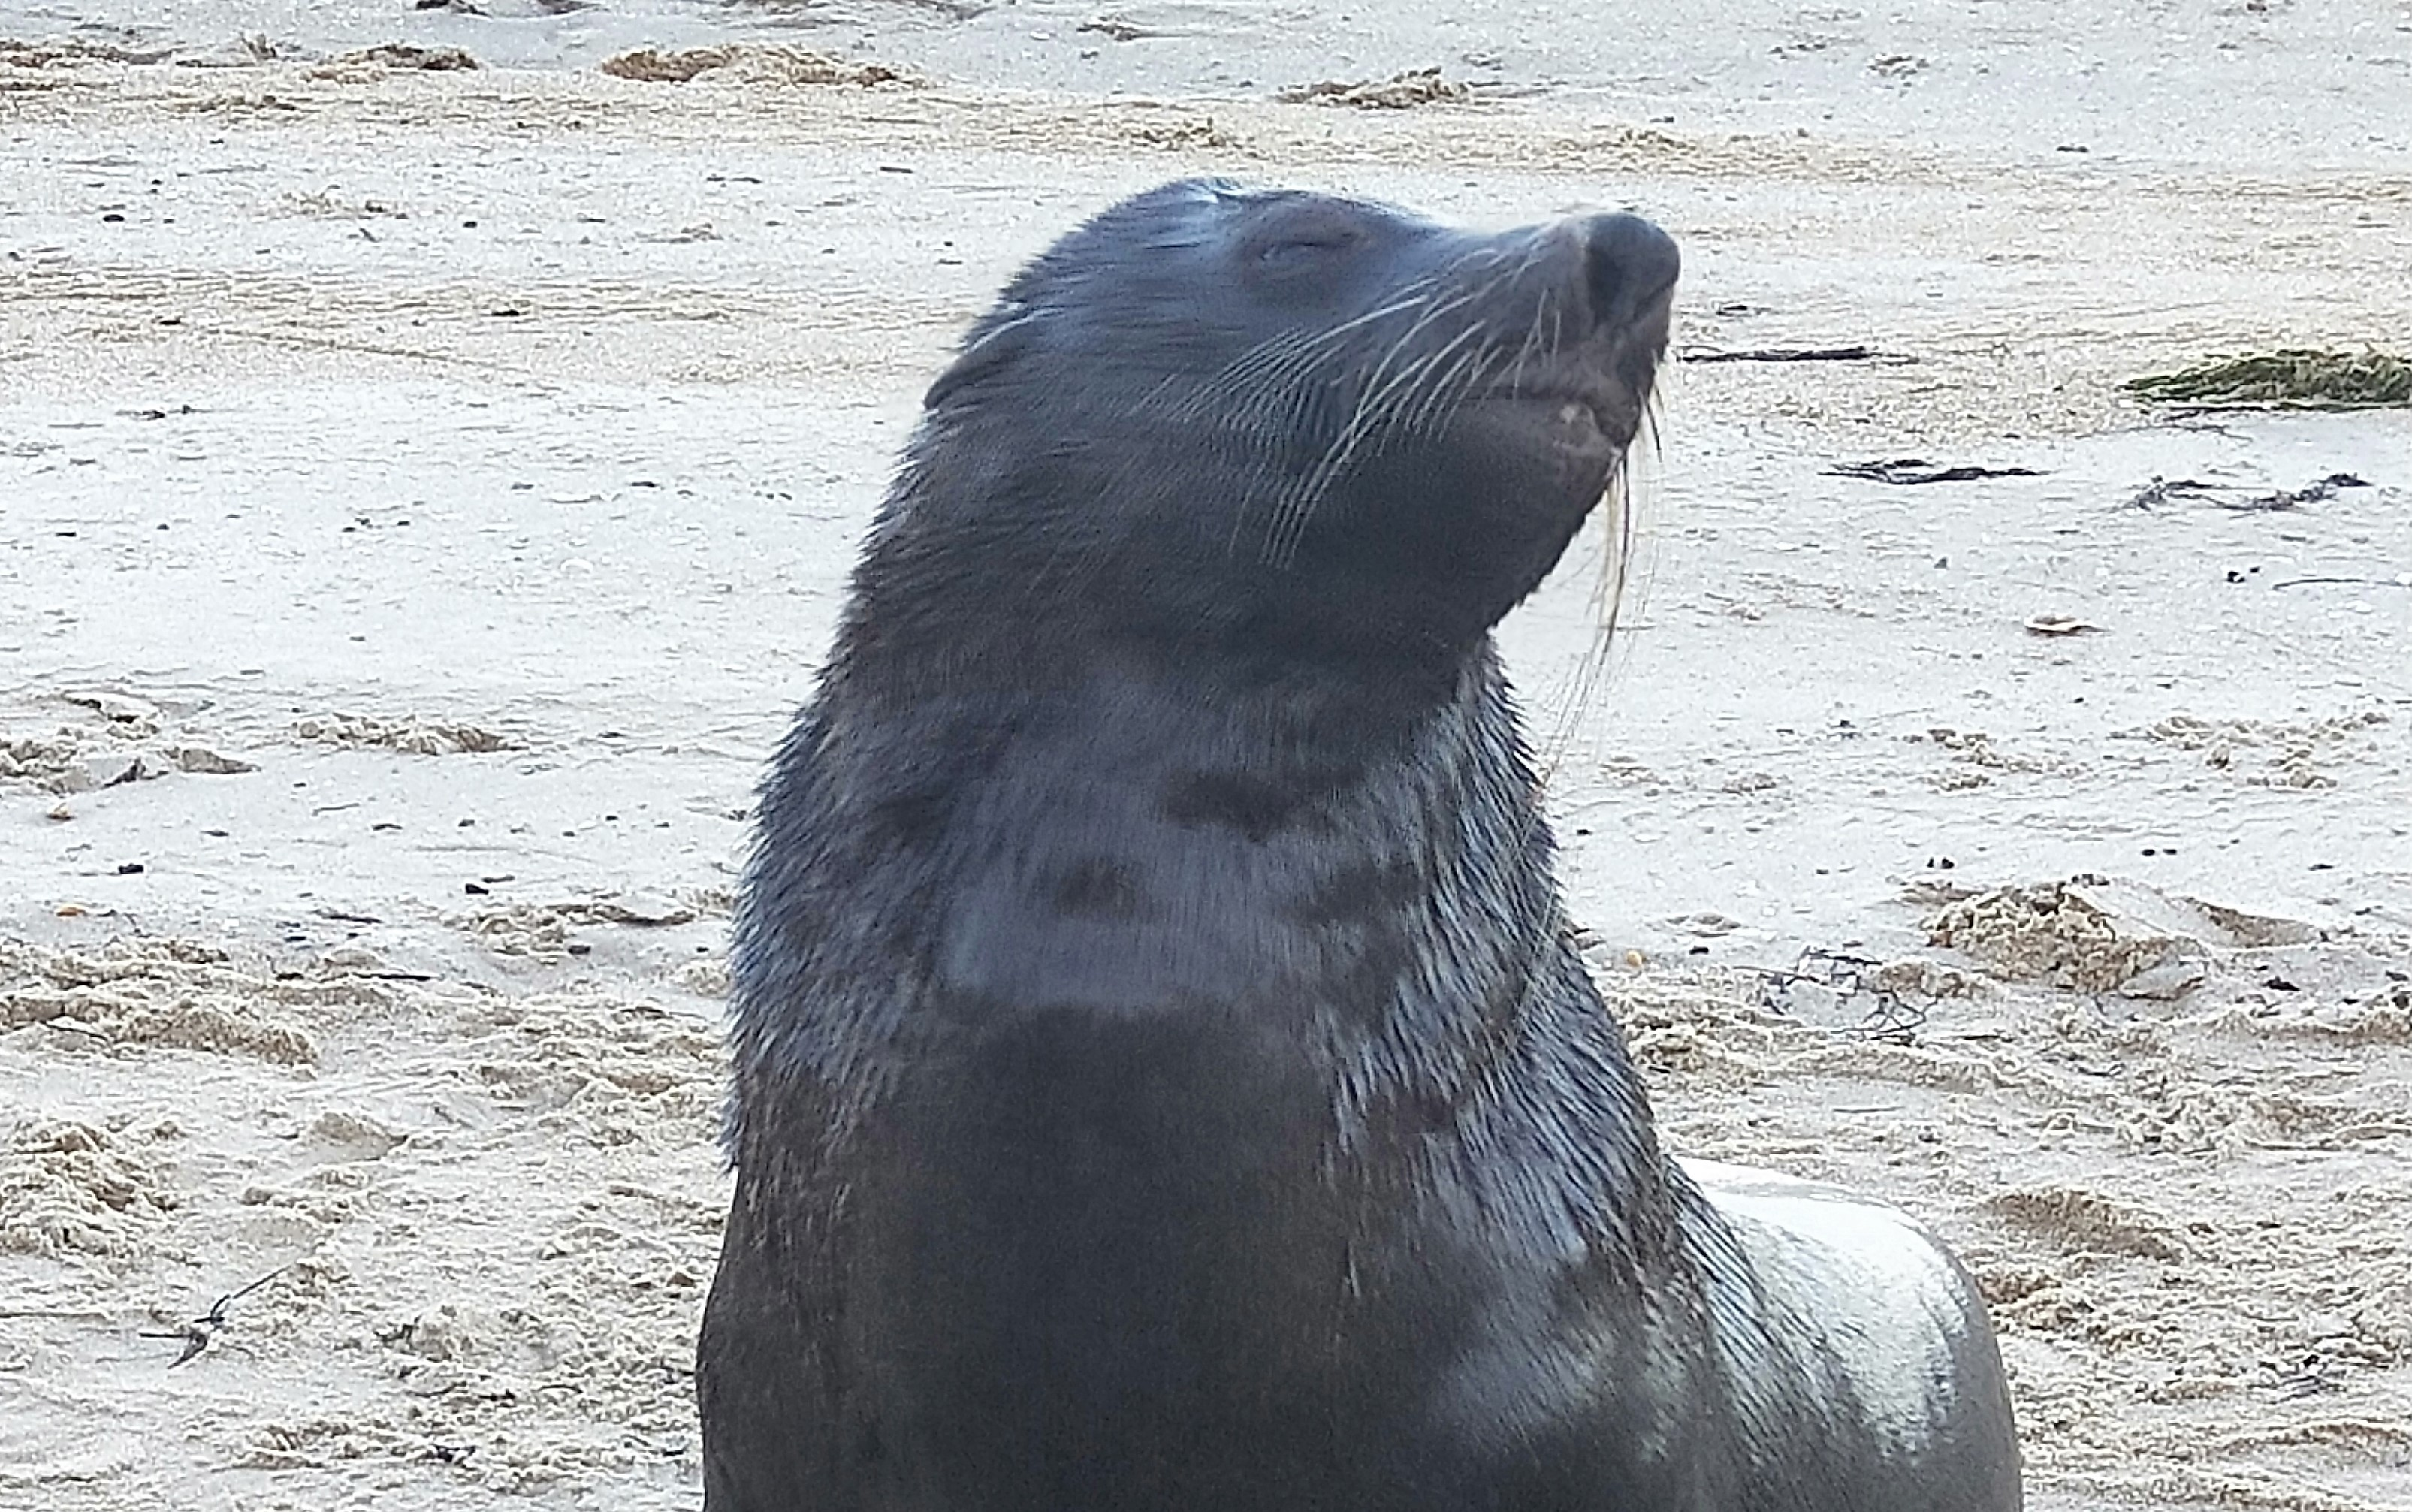 The huge Black Rock seal has died